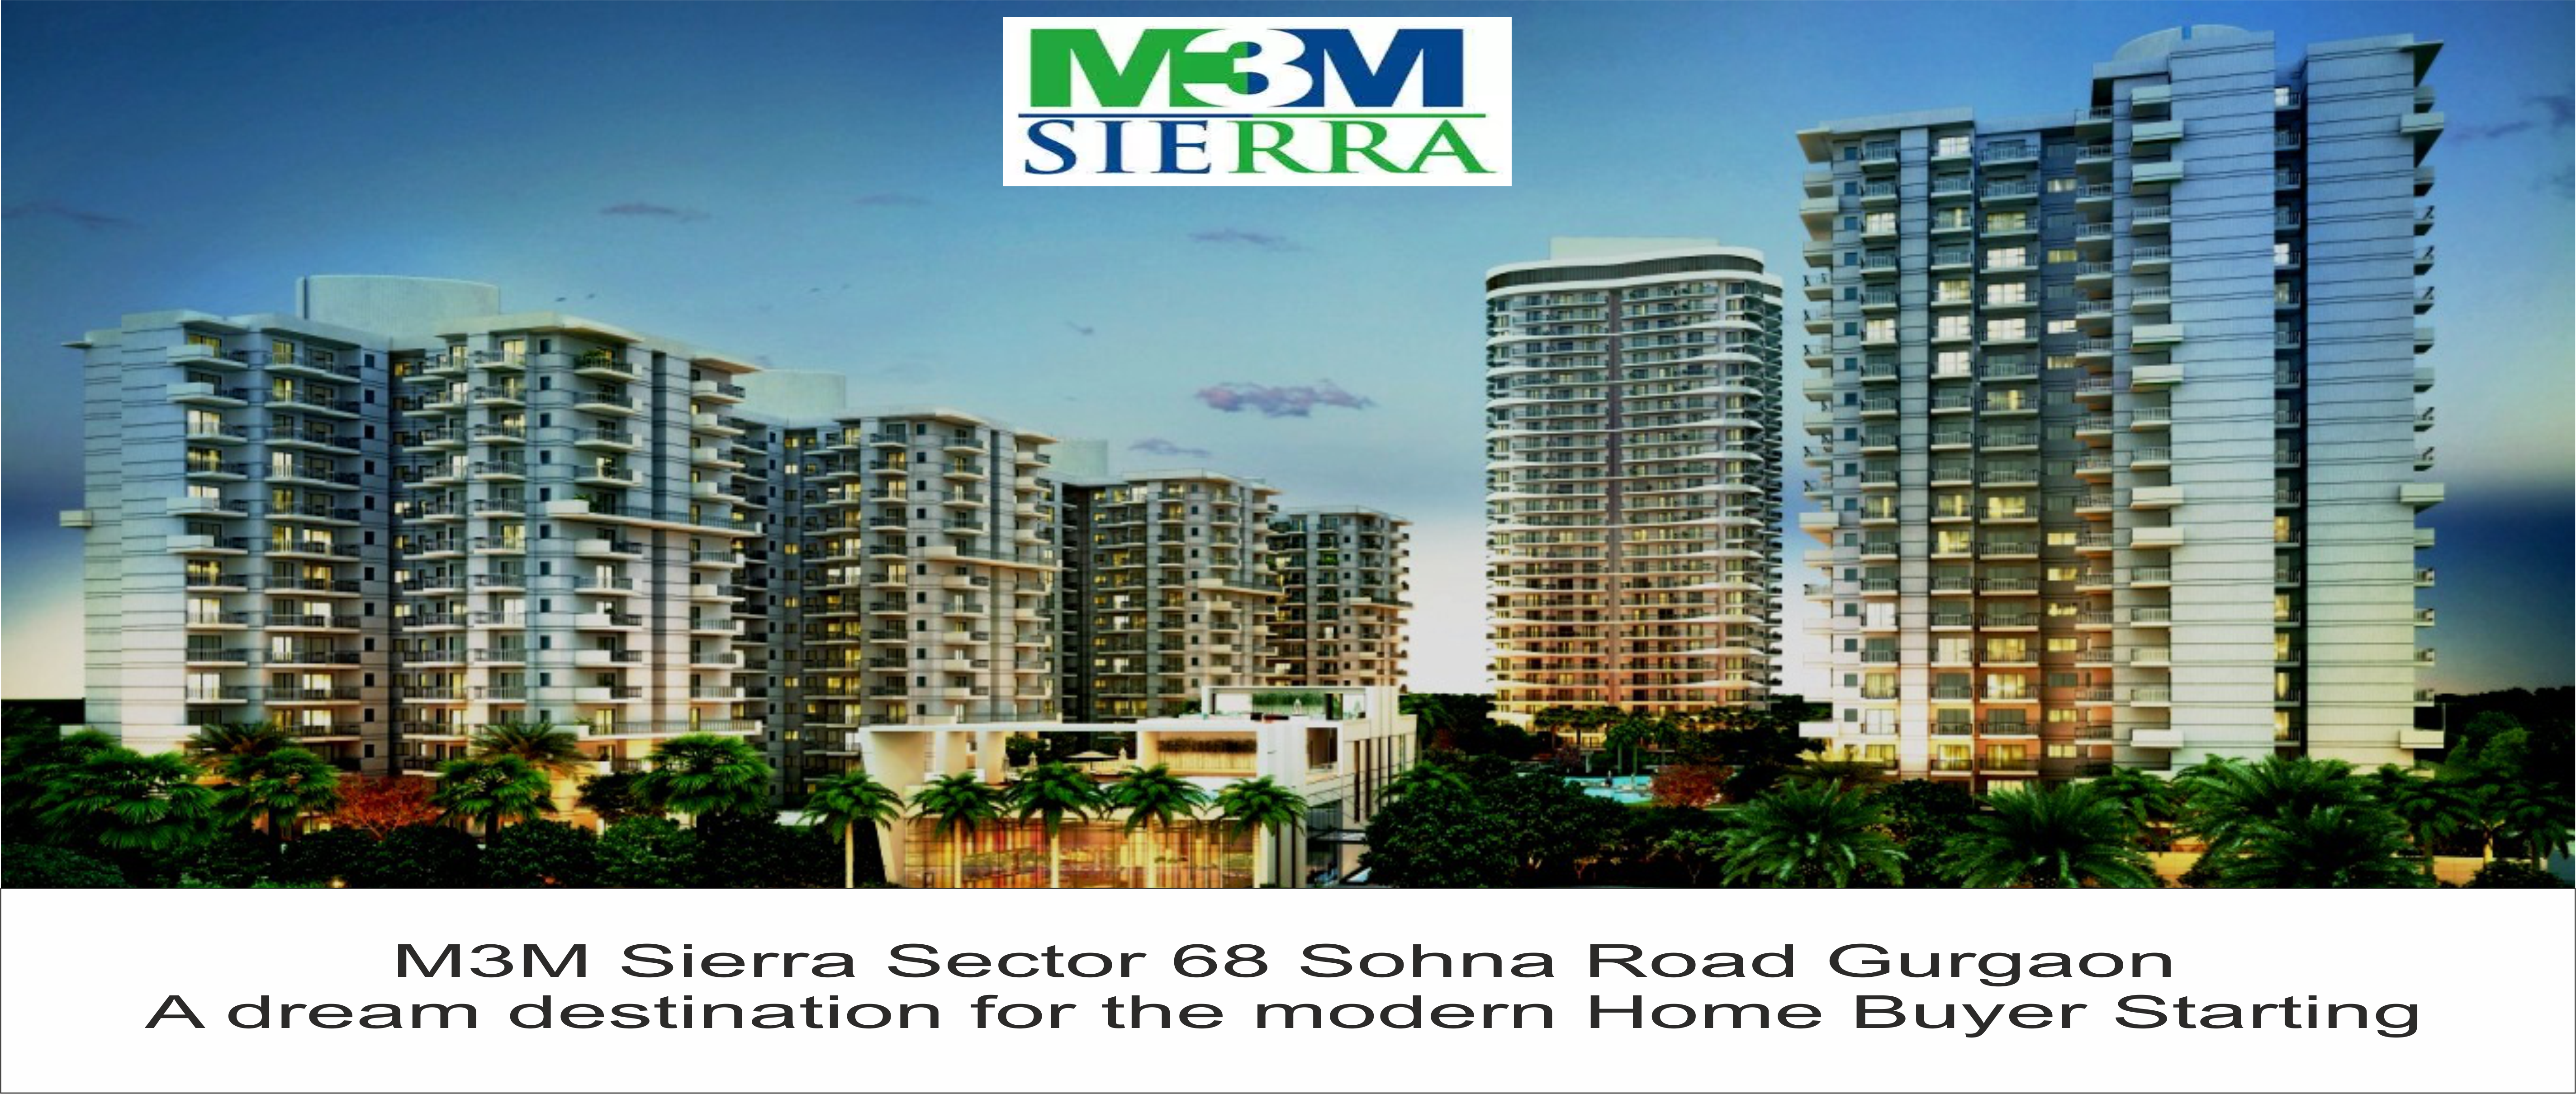 M3M Sierra Sector 68 Sohna Road Gurgaon